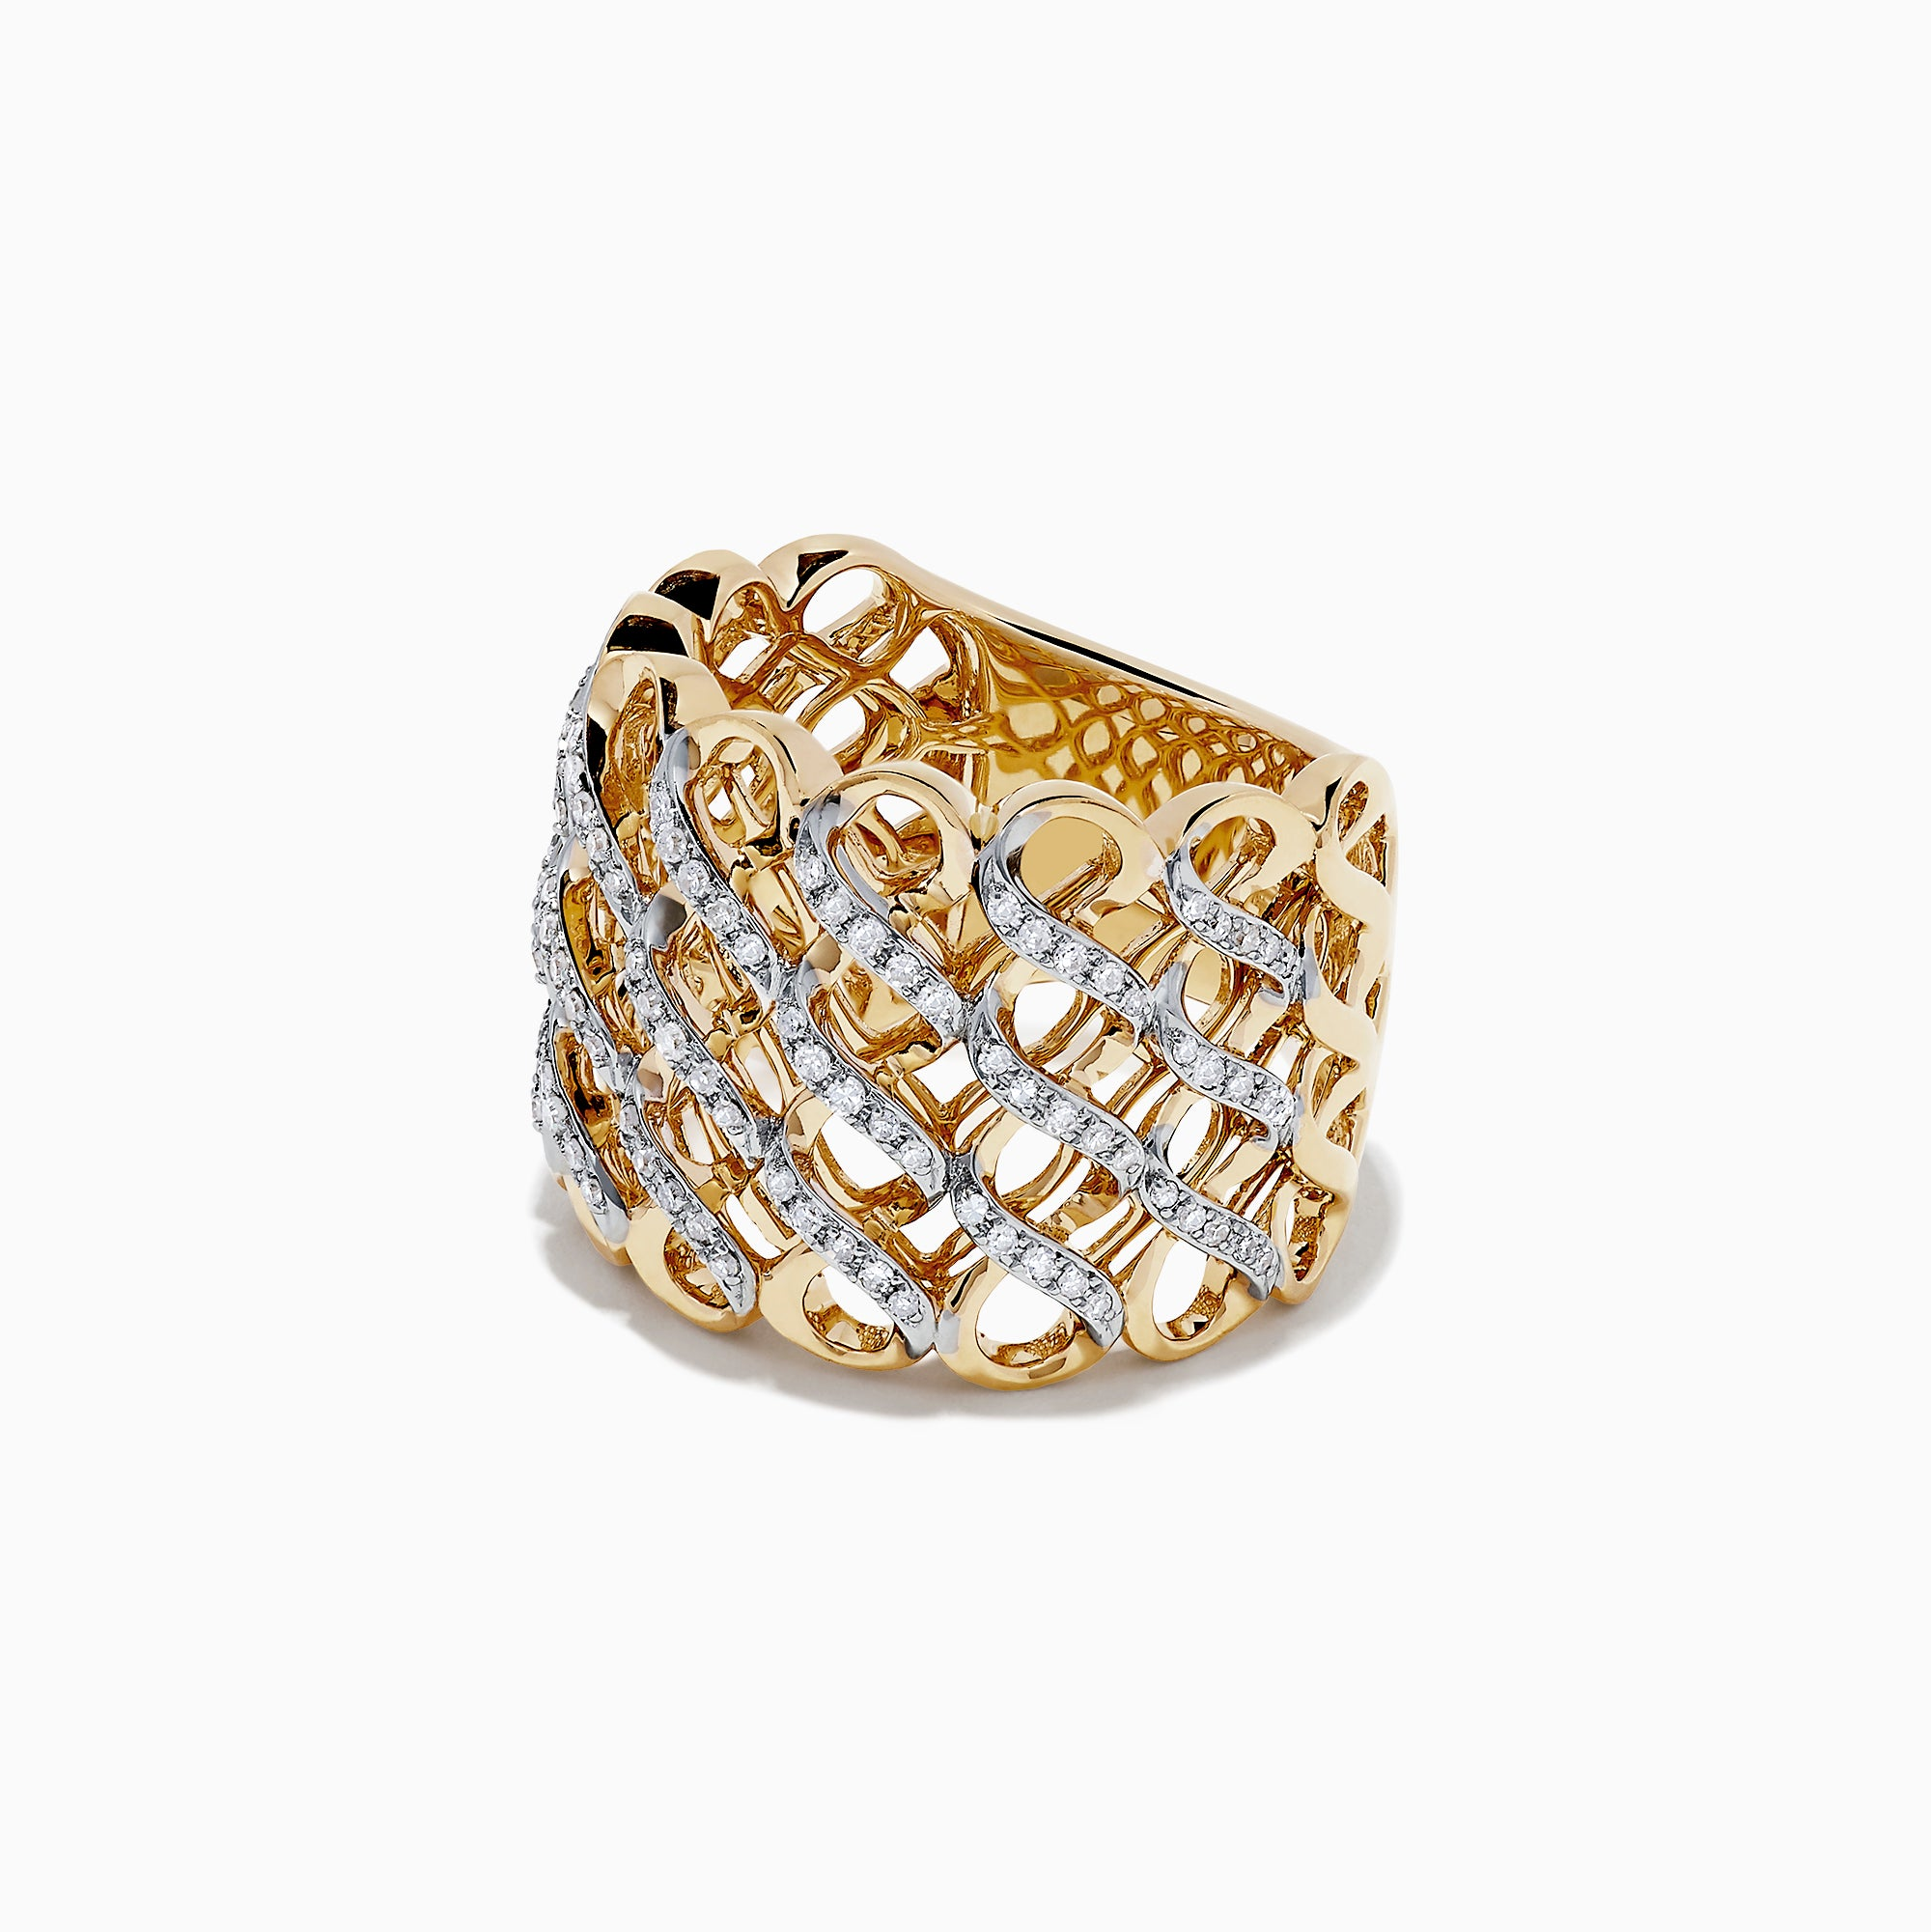 Effy 14K Yellow Gold Diamond Ring, 0.39 TCW